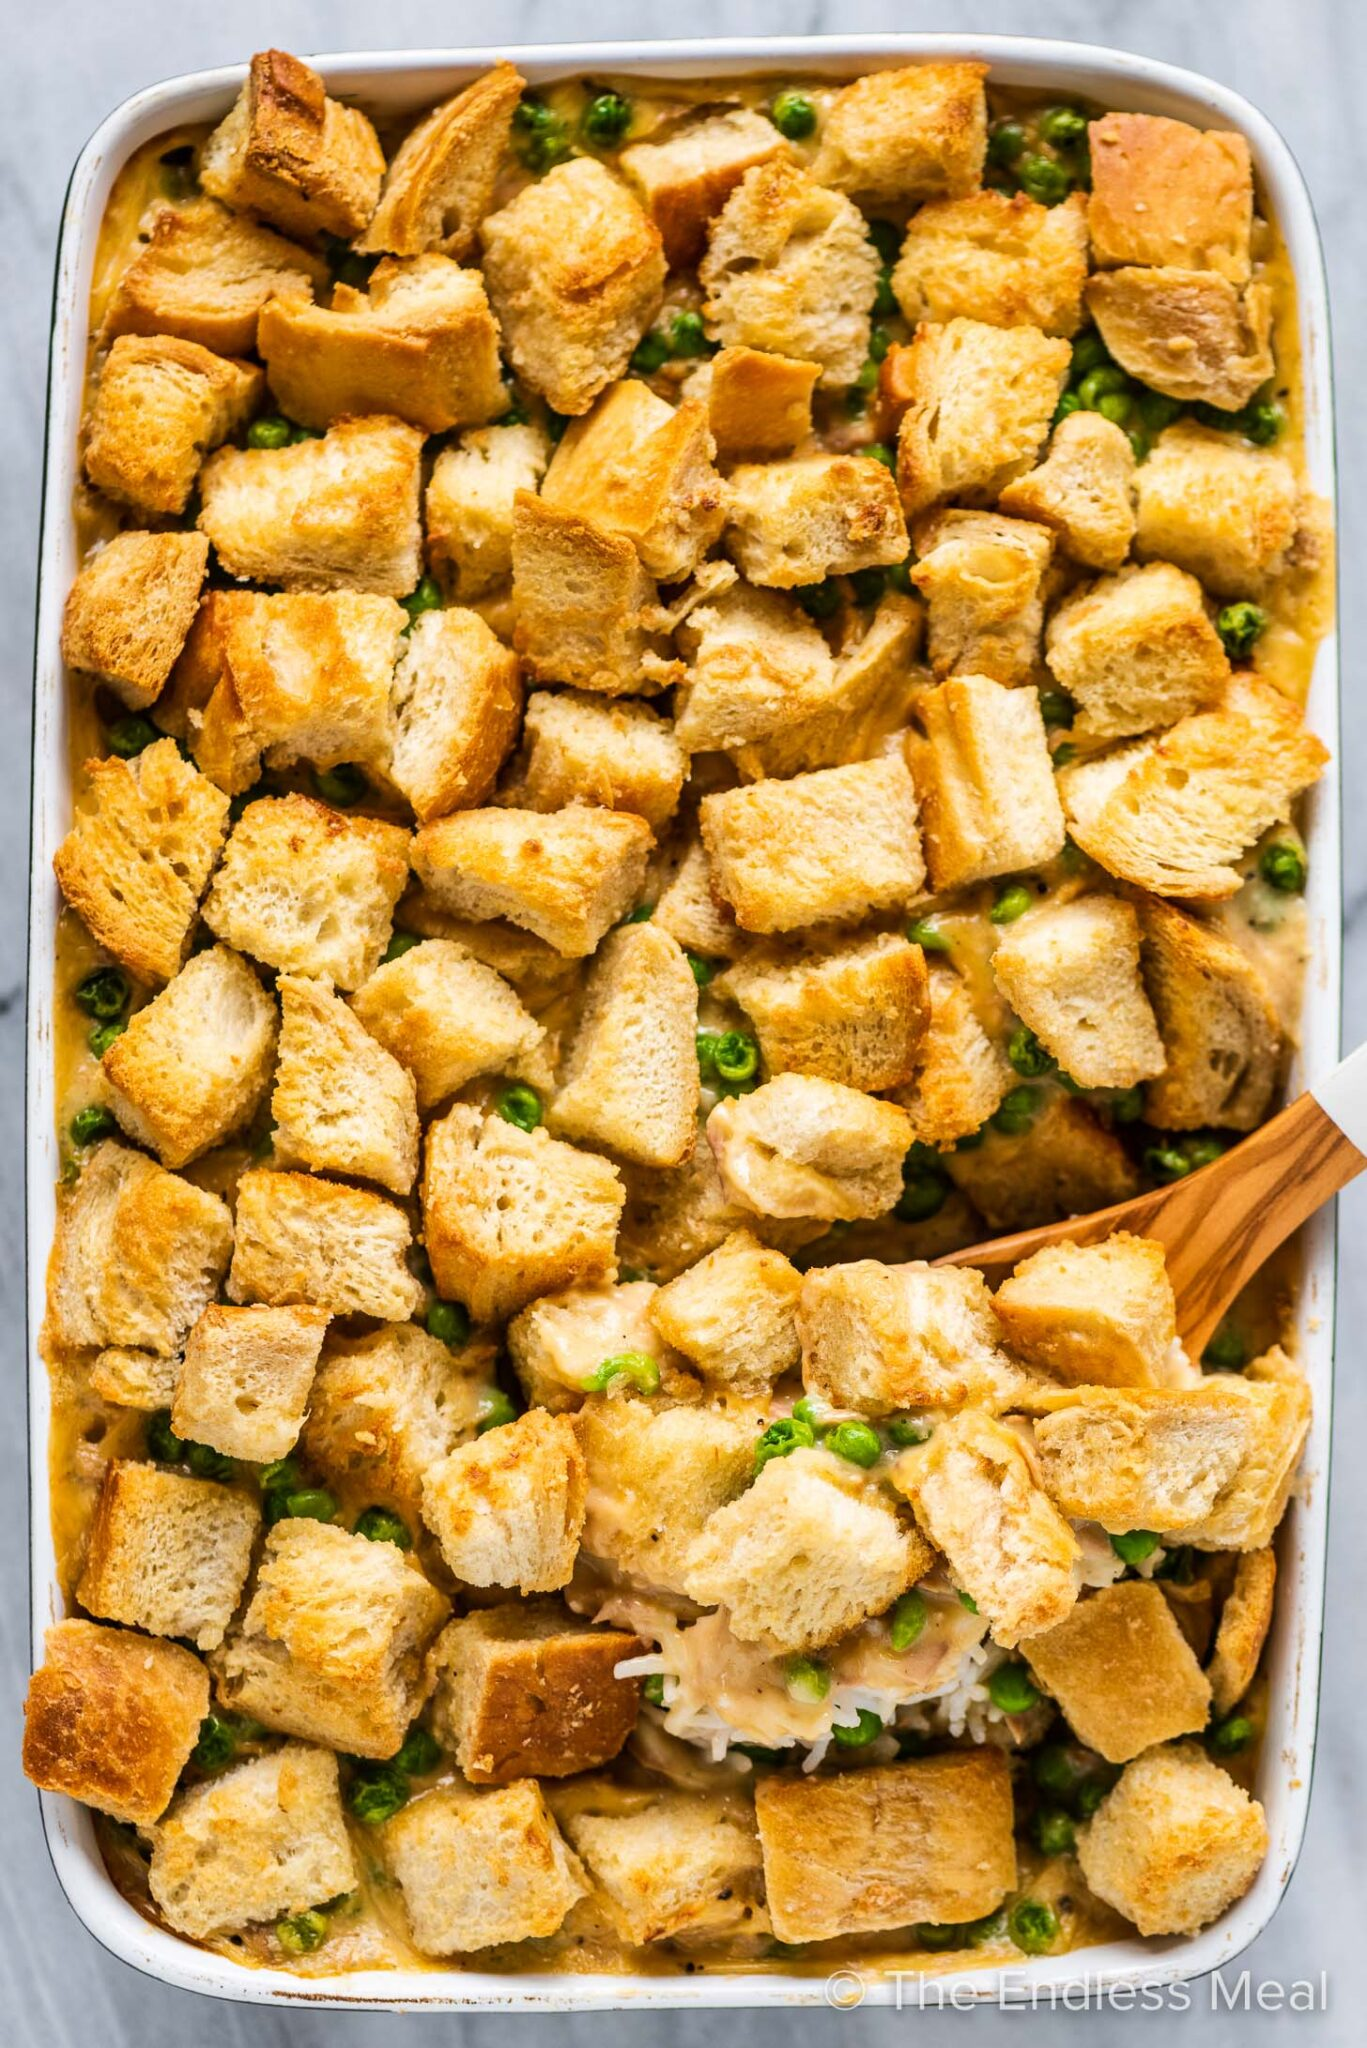 A casserole dish with tuna rice casserole and lots of croutons on top.